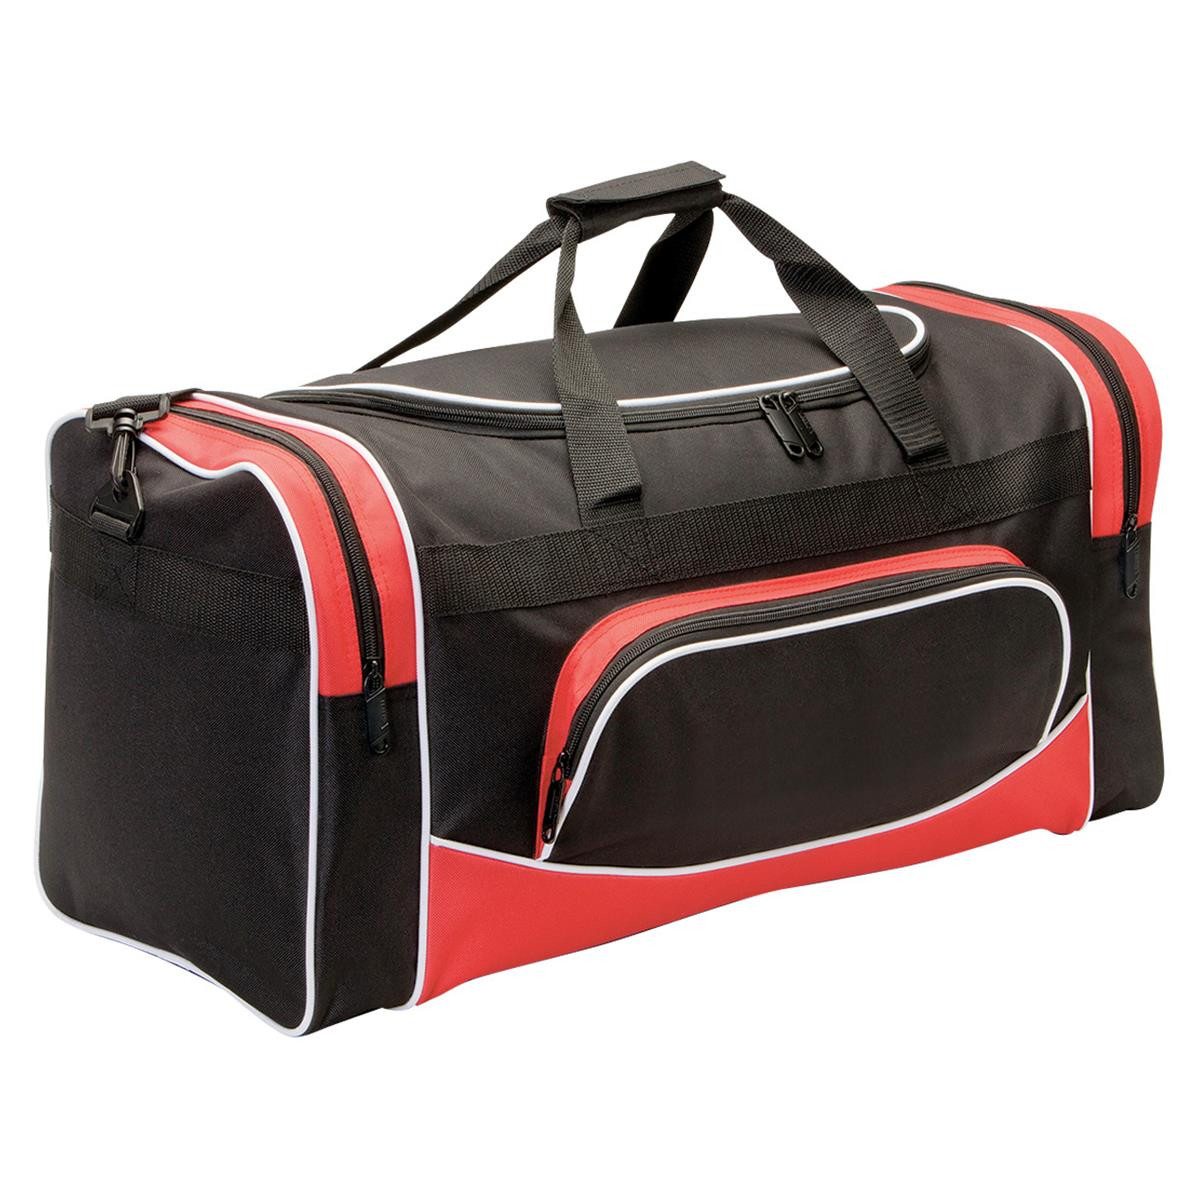 Faster Fashion cheap large travel weekender garment bag ladies duffel shoulder bag for women Factory travel gym carry bag, sneak